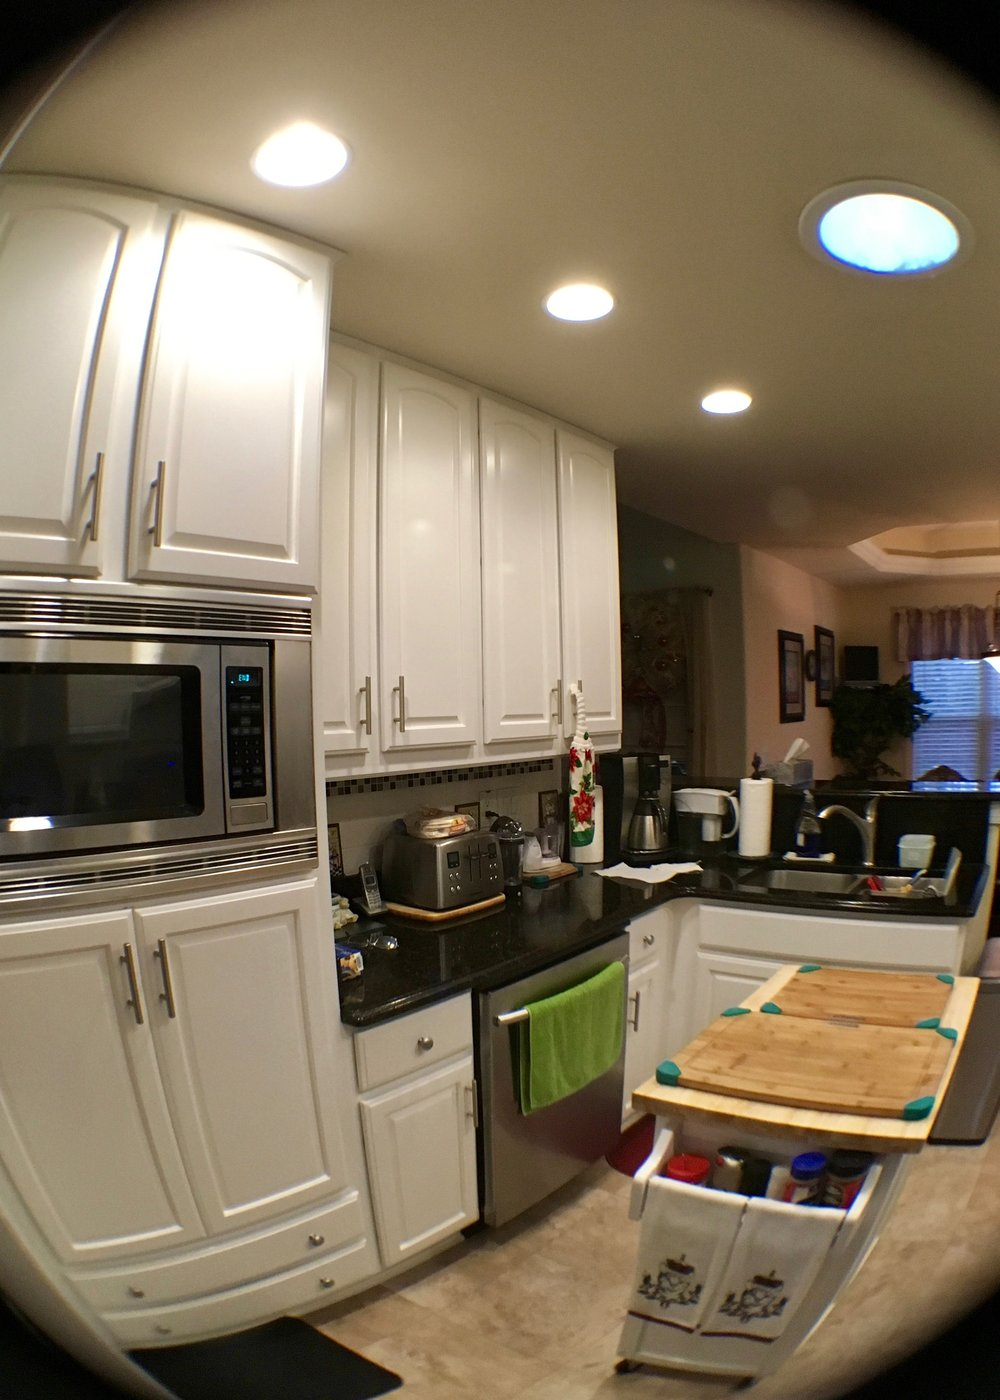 KITCHEN CABINET REPAINT:  BENJAMIN MOORE ADVANCE SATIN FINISH, INSTALL NEW HARDWARE